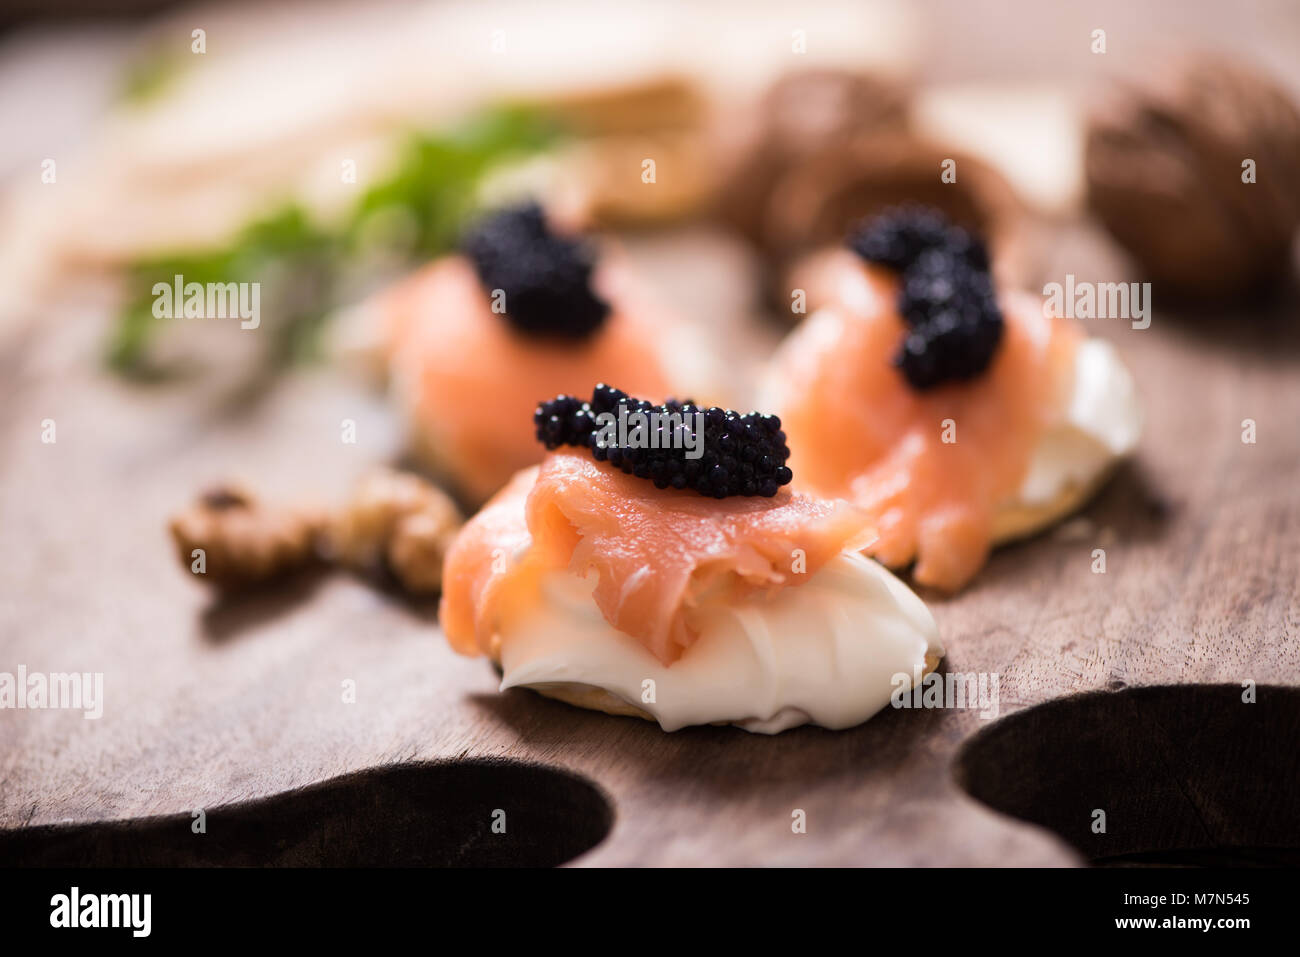 Canapes with smoked salmon and caviar - Stock Image